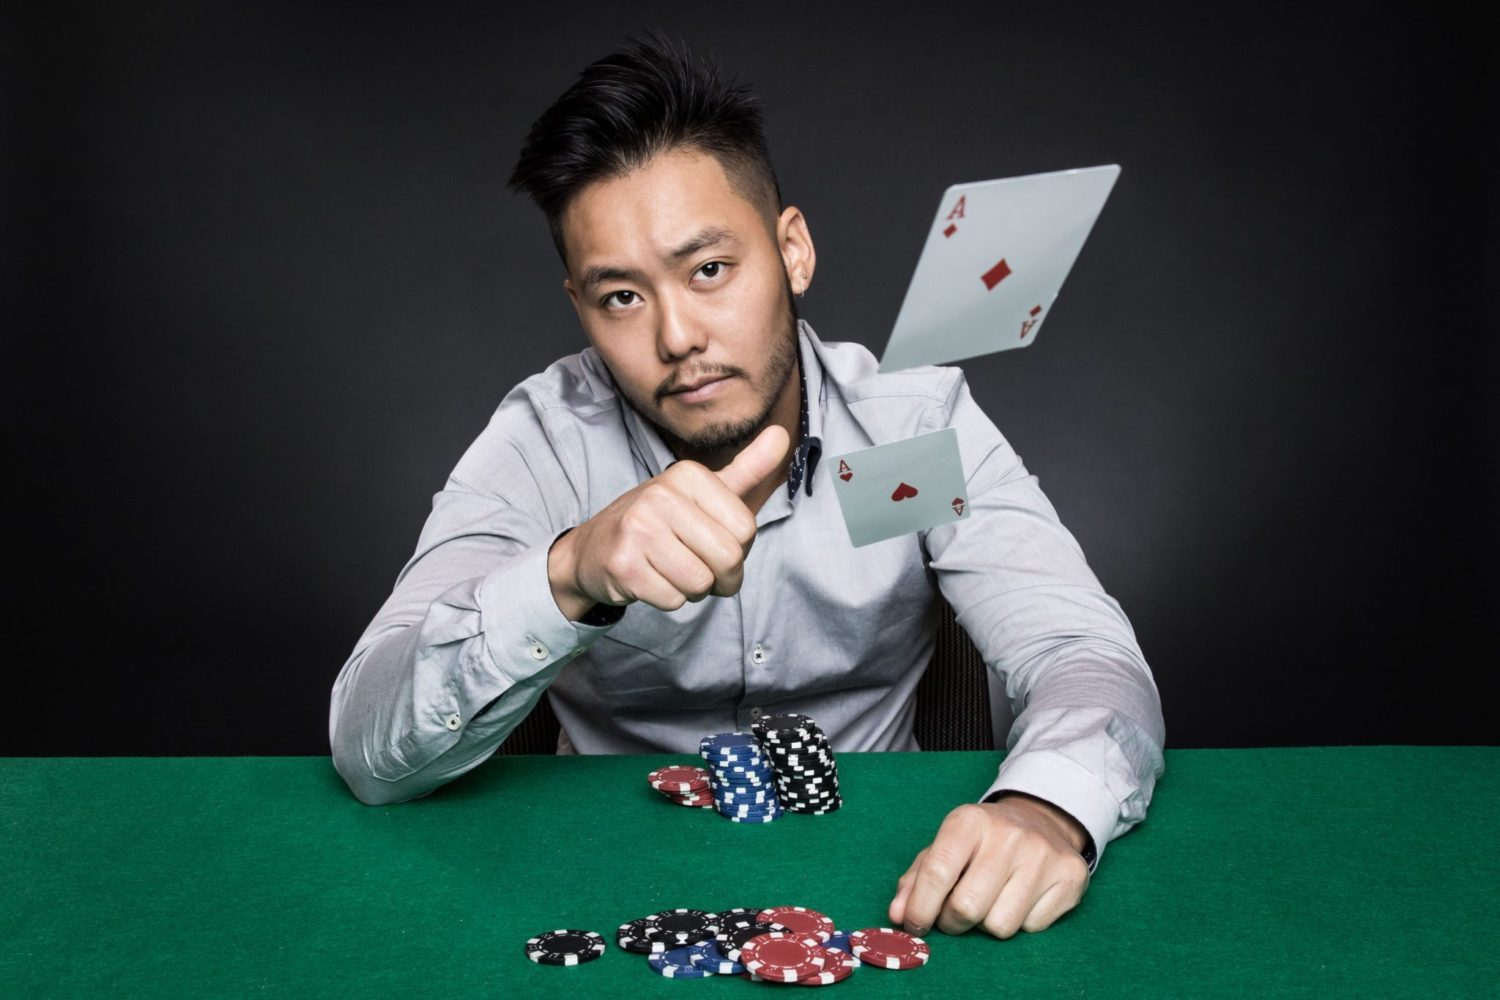 Lifestyle Photography – Poker Player Throws Cards at Camera